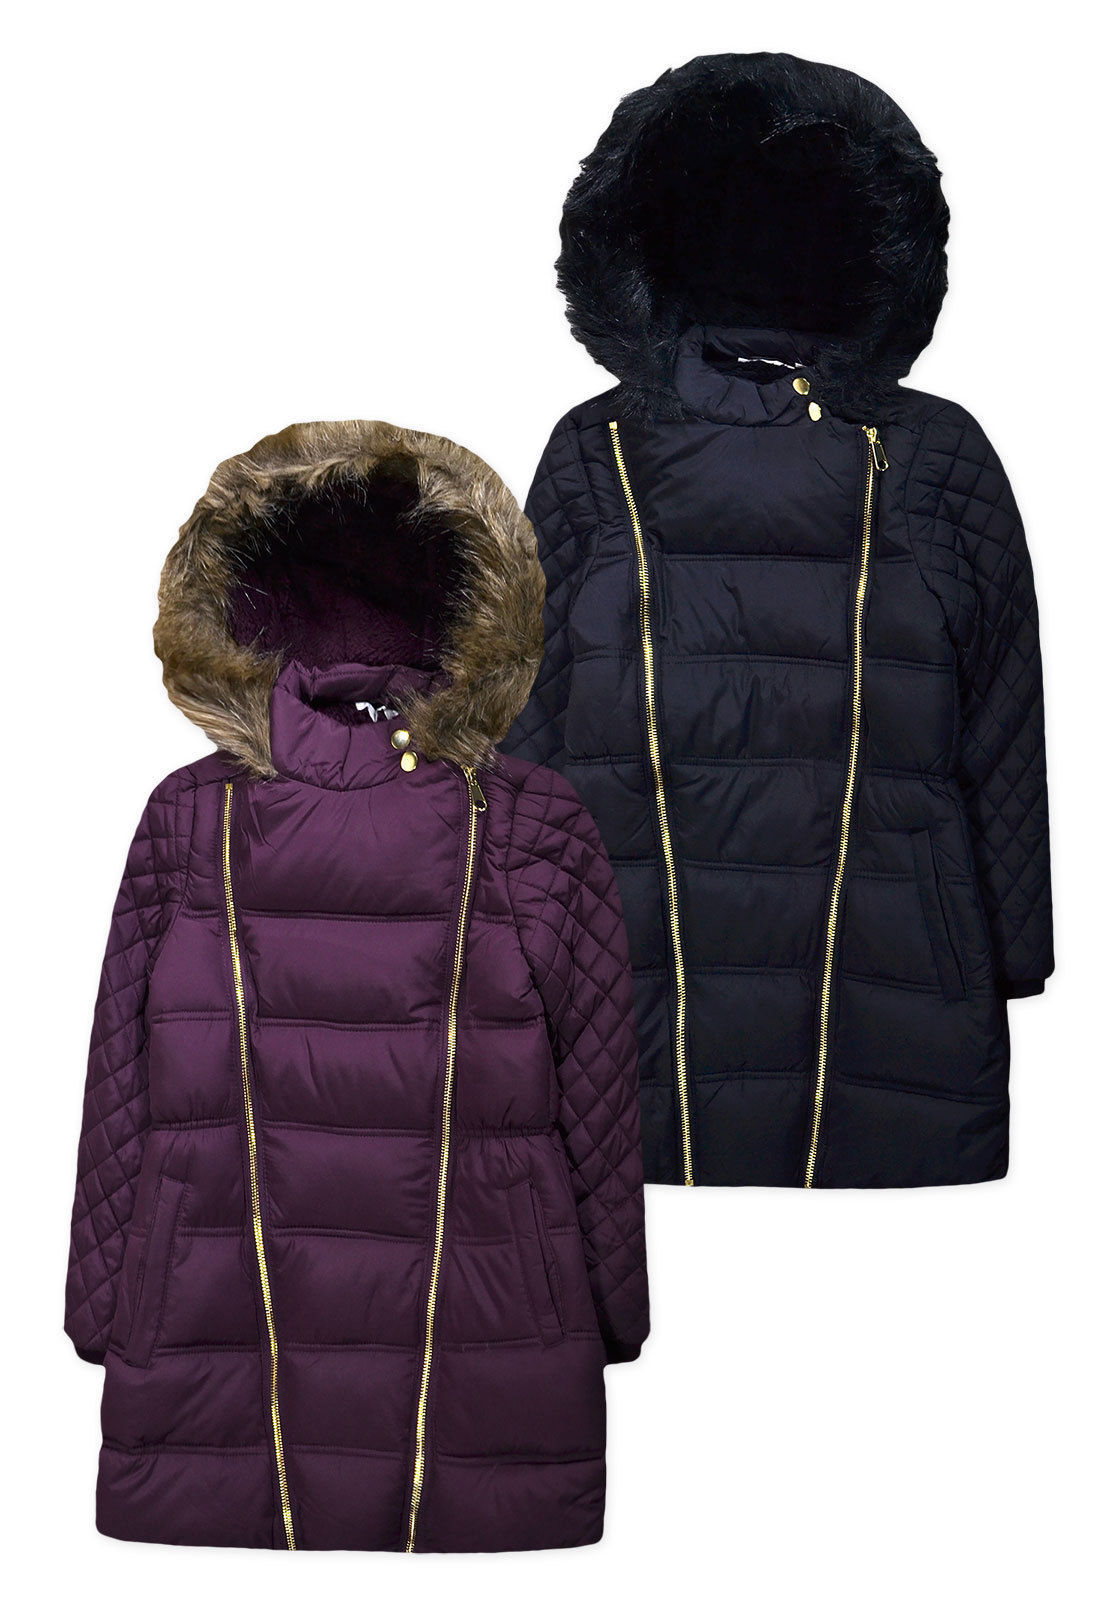 435903adf Girls Coat New Kids Quilted Padded Fur Trimmed School Plain Jacket 6 ...